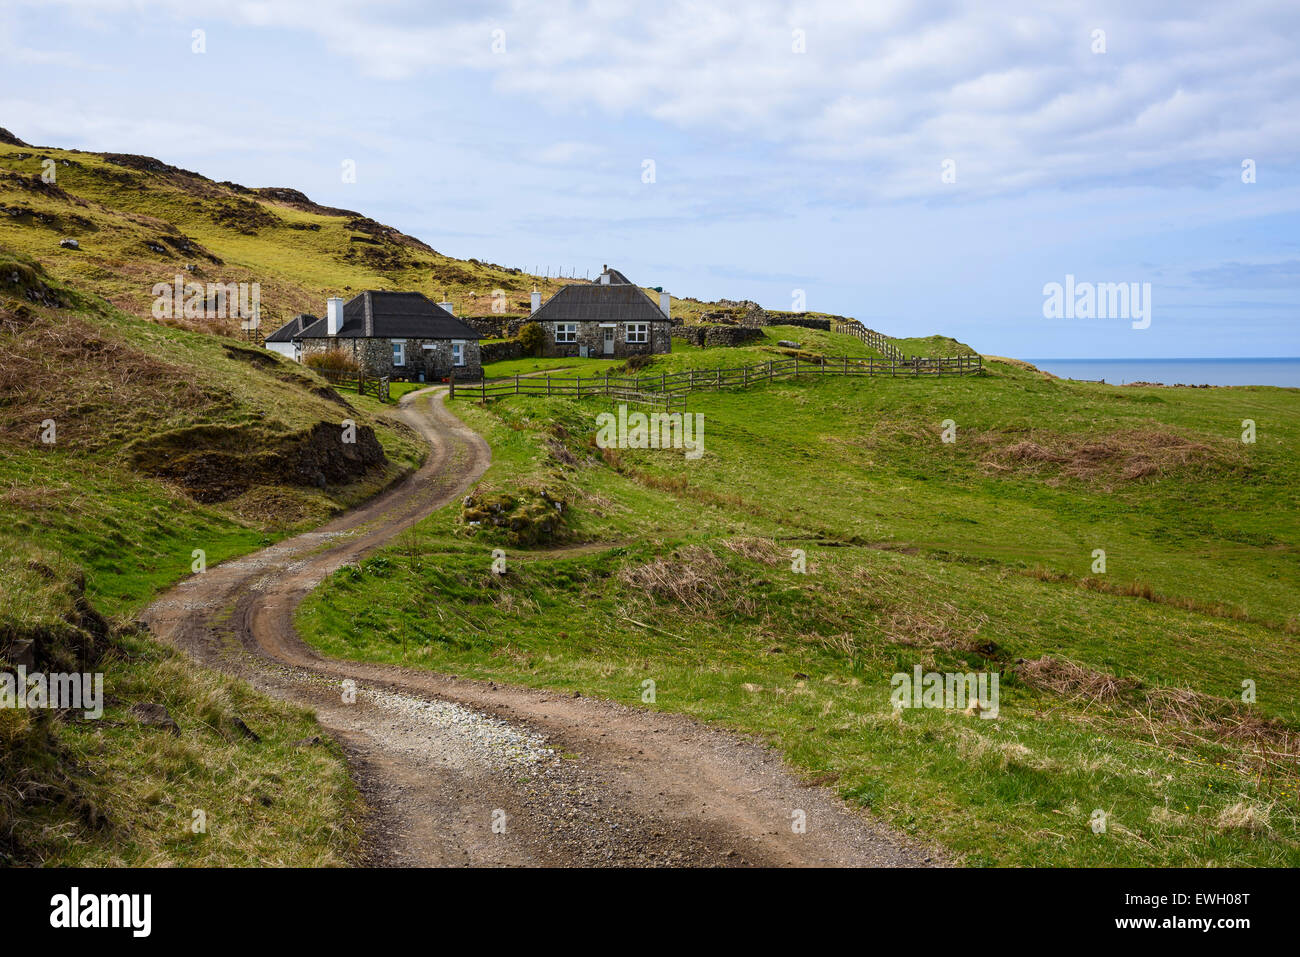 Traditional cottages, near Treshnish Point, Isle of Mull, Hebrides, Argyll and Bute, Scotland - Stock Image